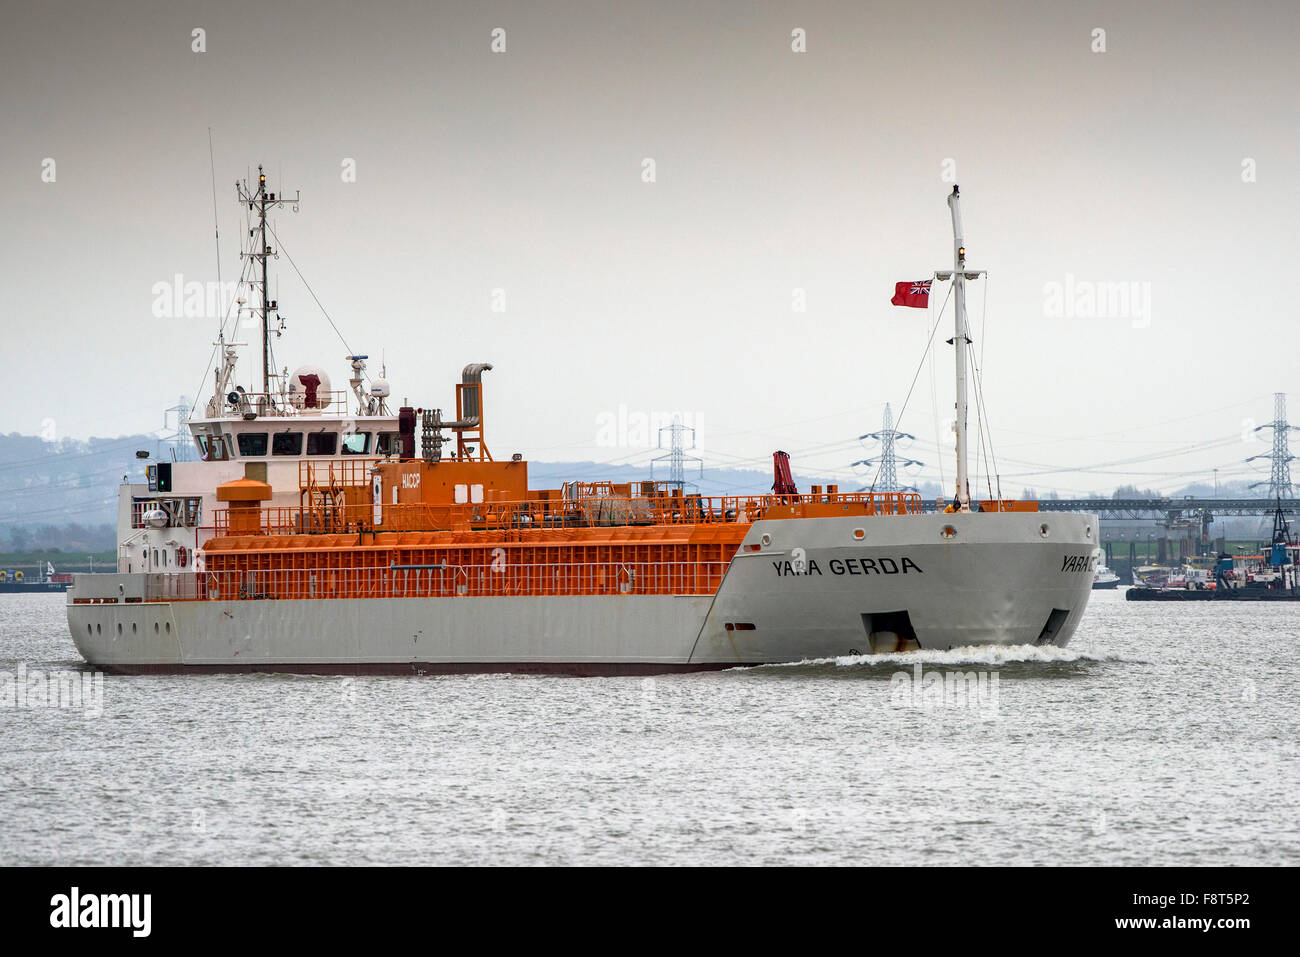 The CO2 tanker,Yara Gerda steaming upriver on the River Thames. - Stock Image